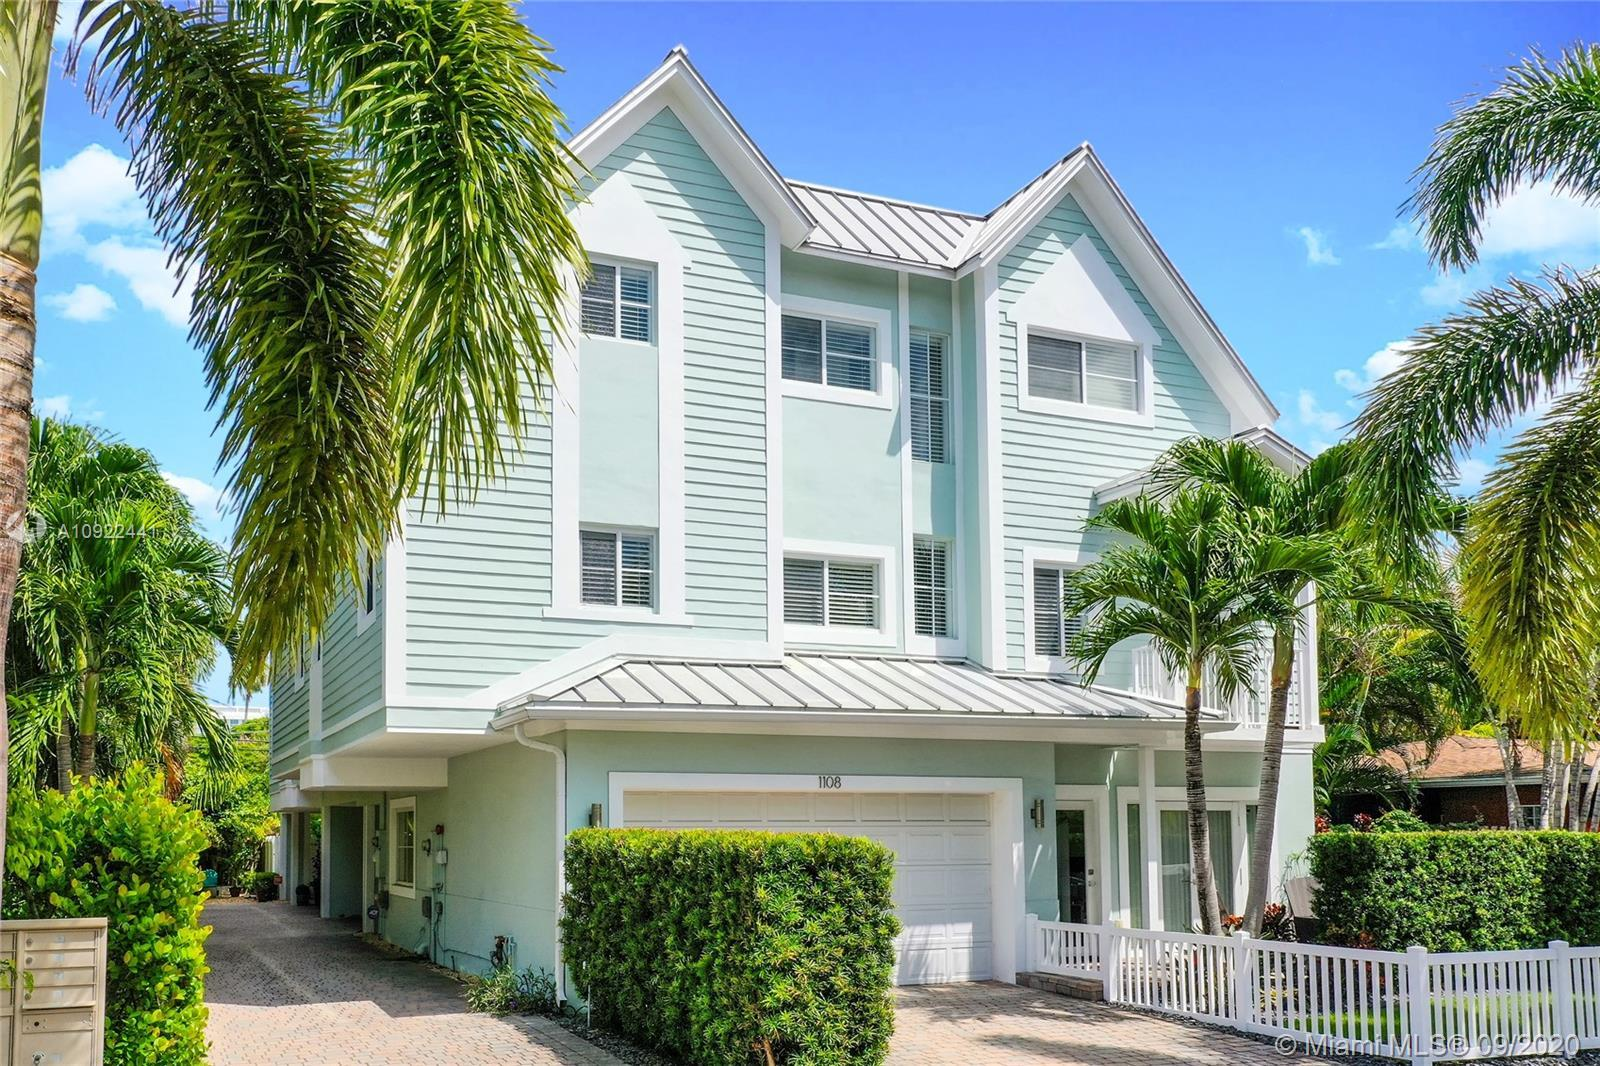 Key West style luxury townhouse walking distance to the Galleria Mall, beach, and a short drive to L